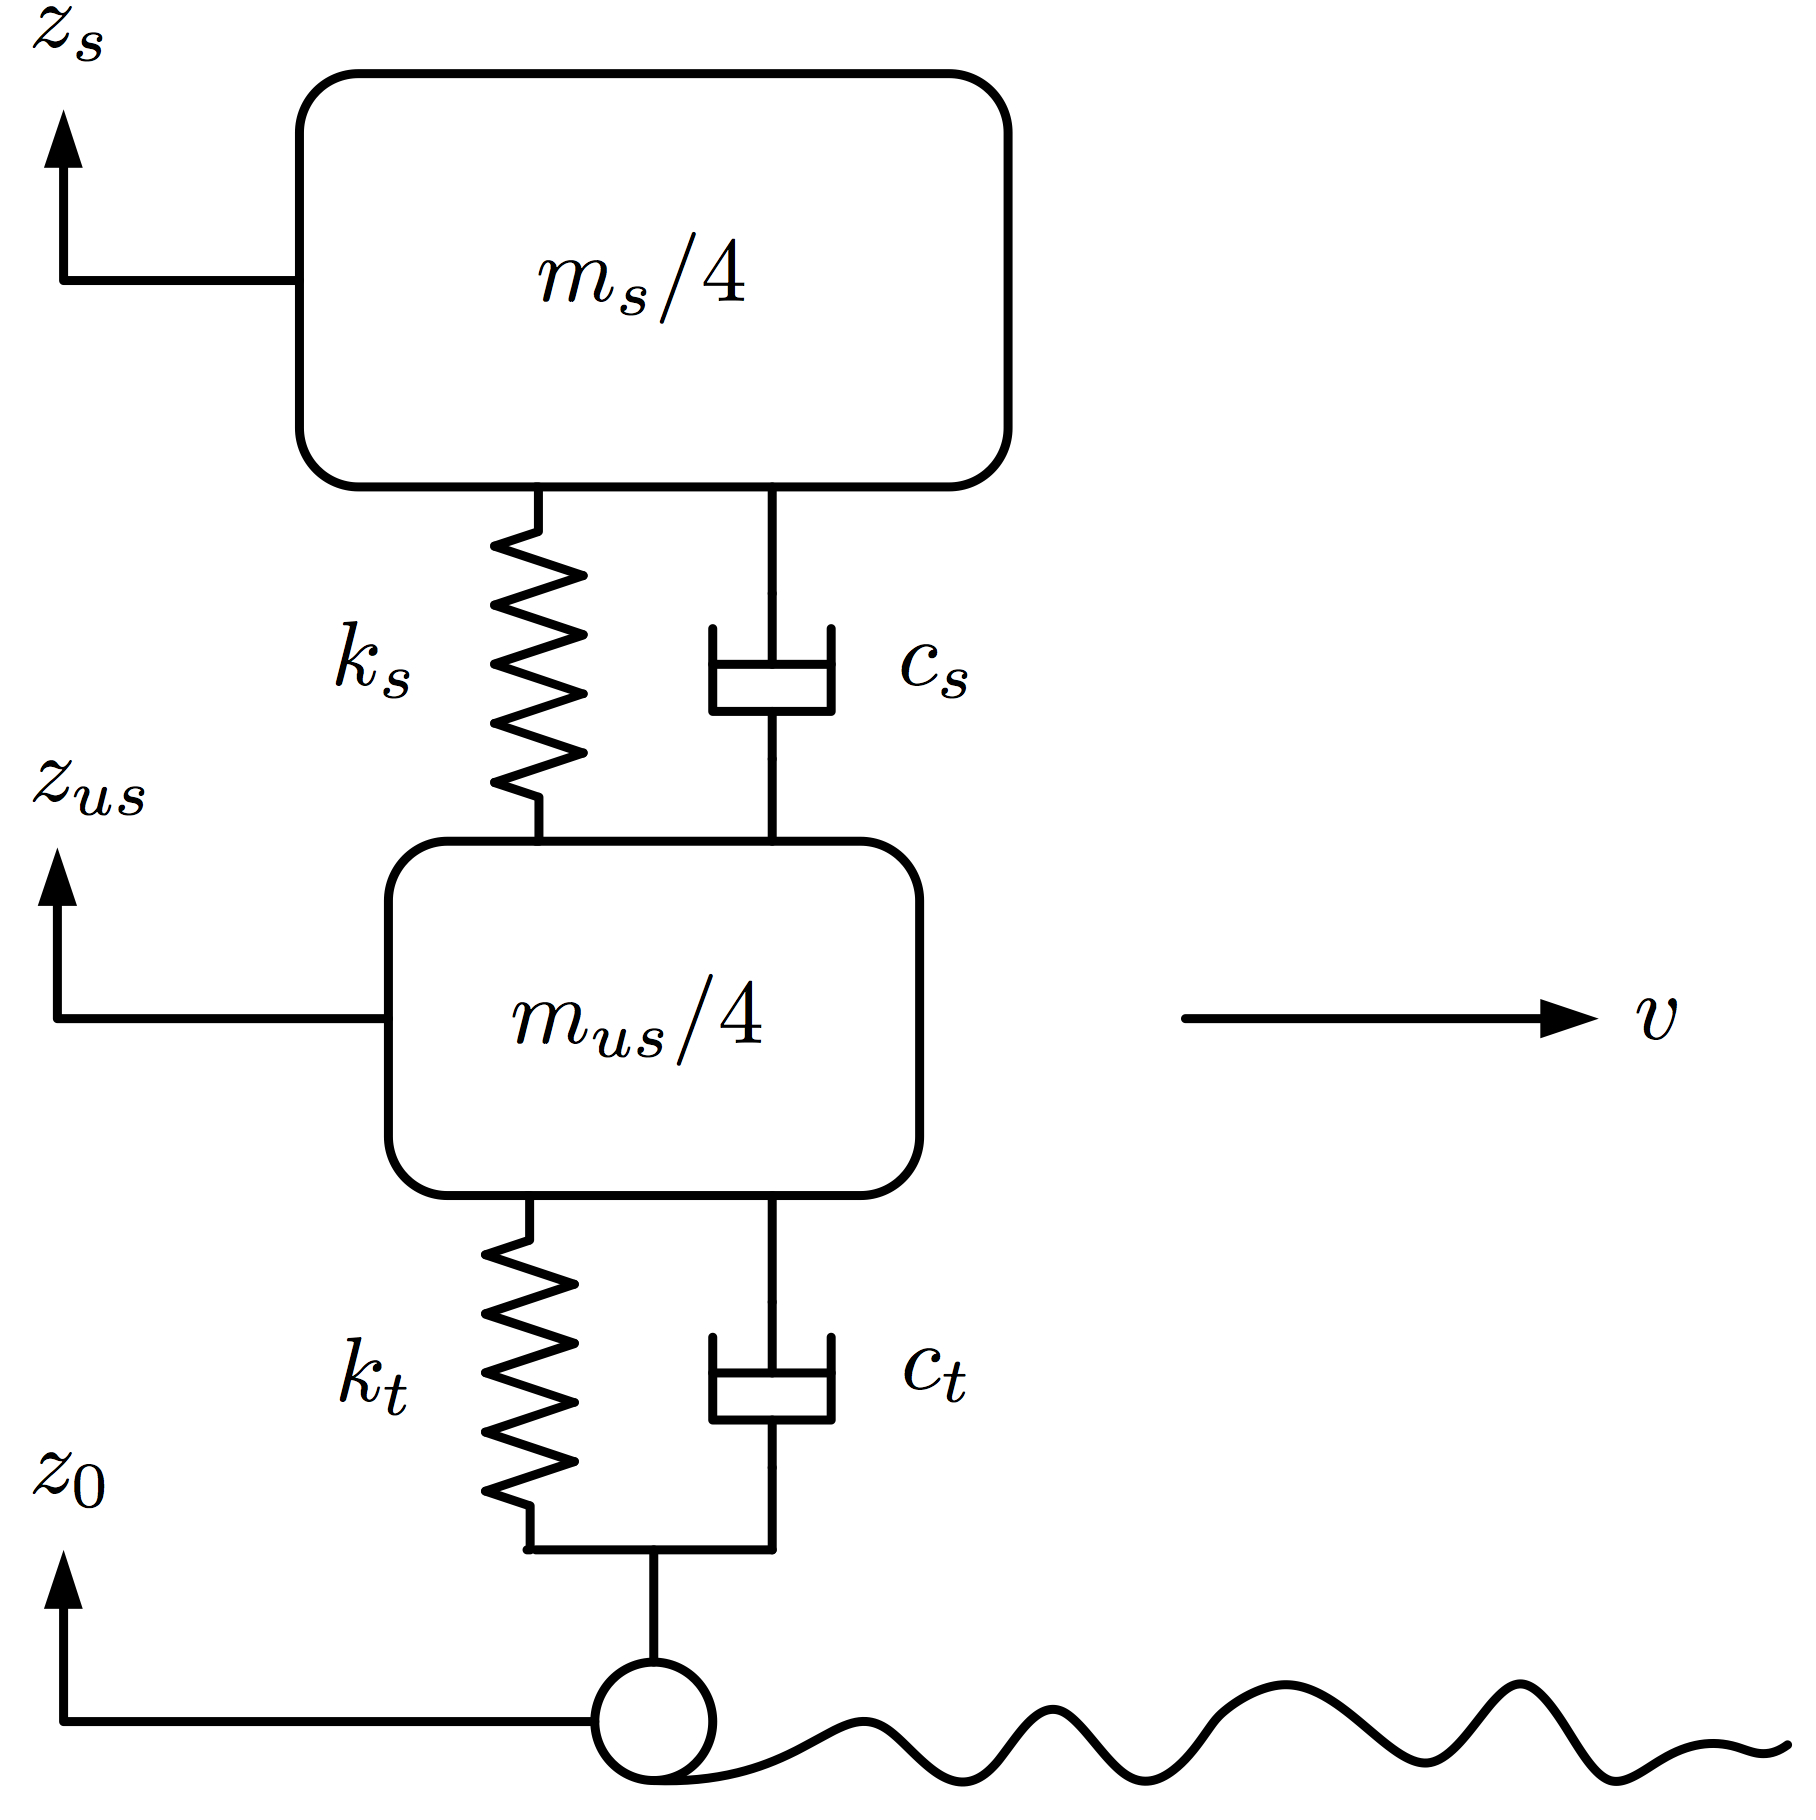 Simultaneous Plant And Control Design Of An Active